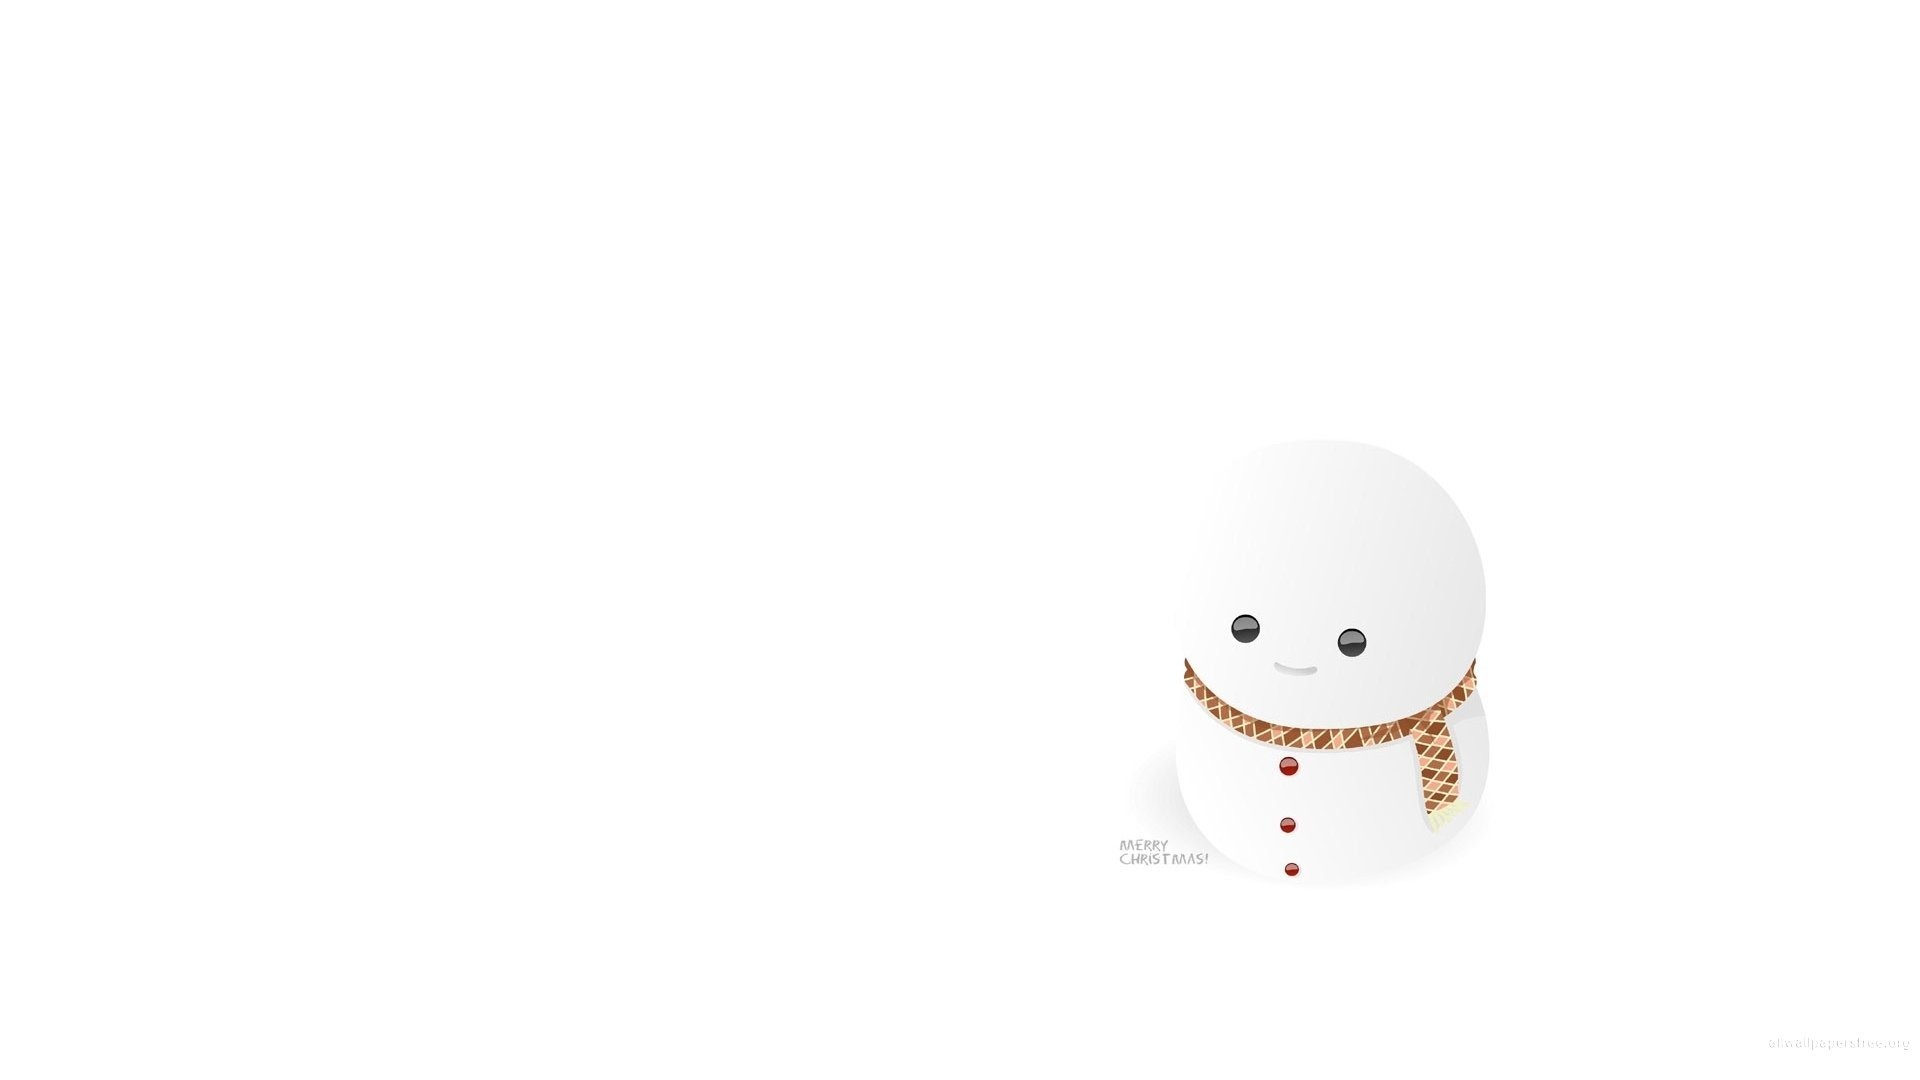 snowman, Minimalism, White Background, Christmas, Black Background  Wallpapers HD / Desktop and Mobile Backgrounds